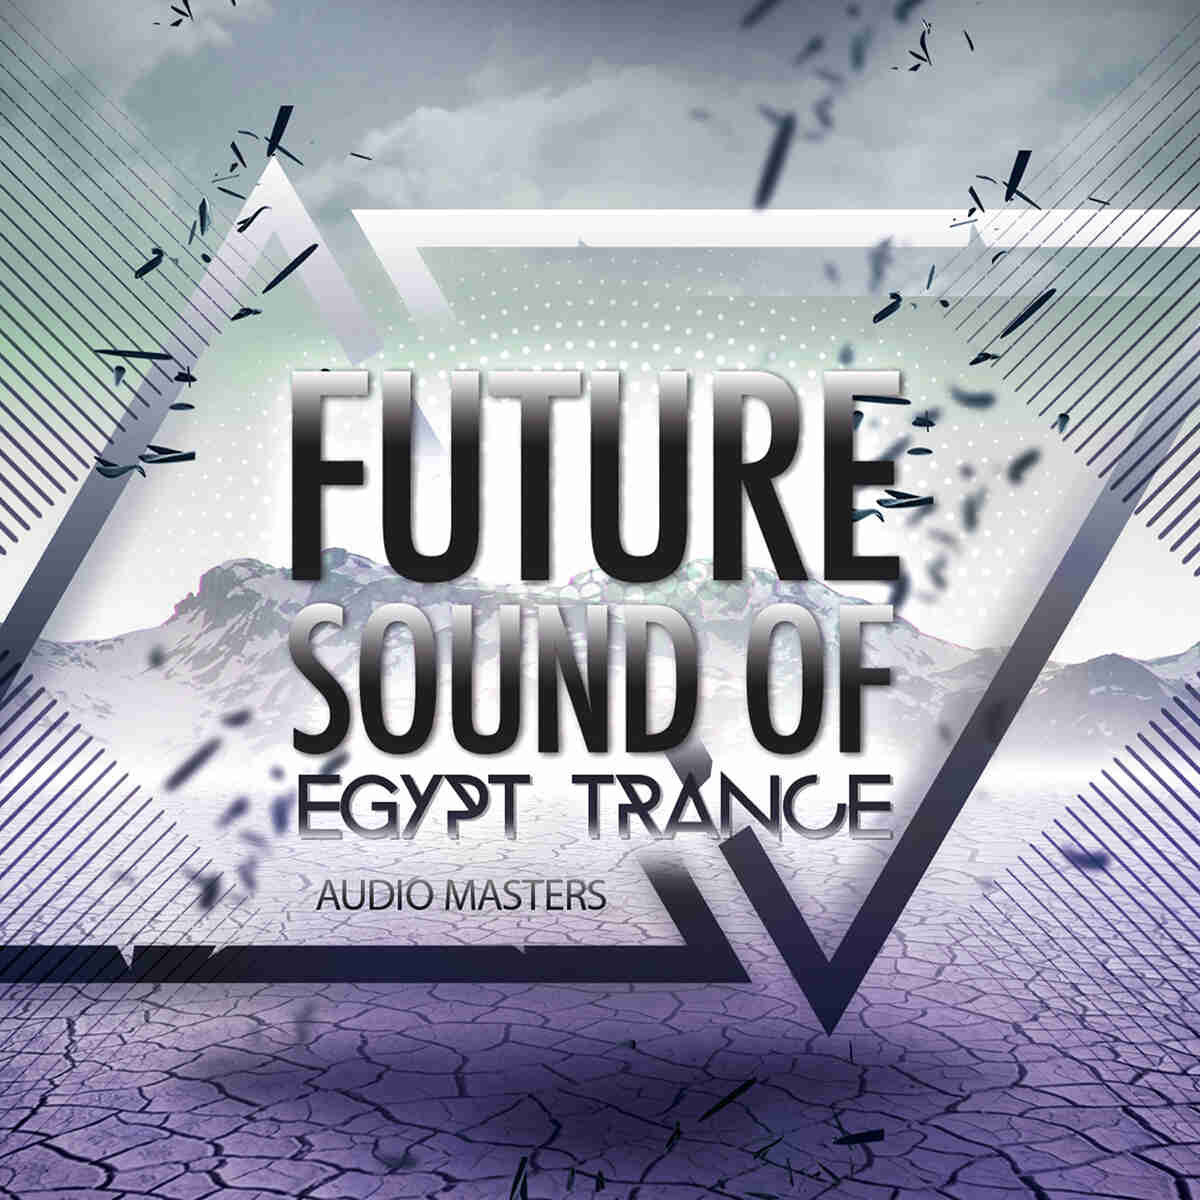 Future Sound of Egypt Trance